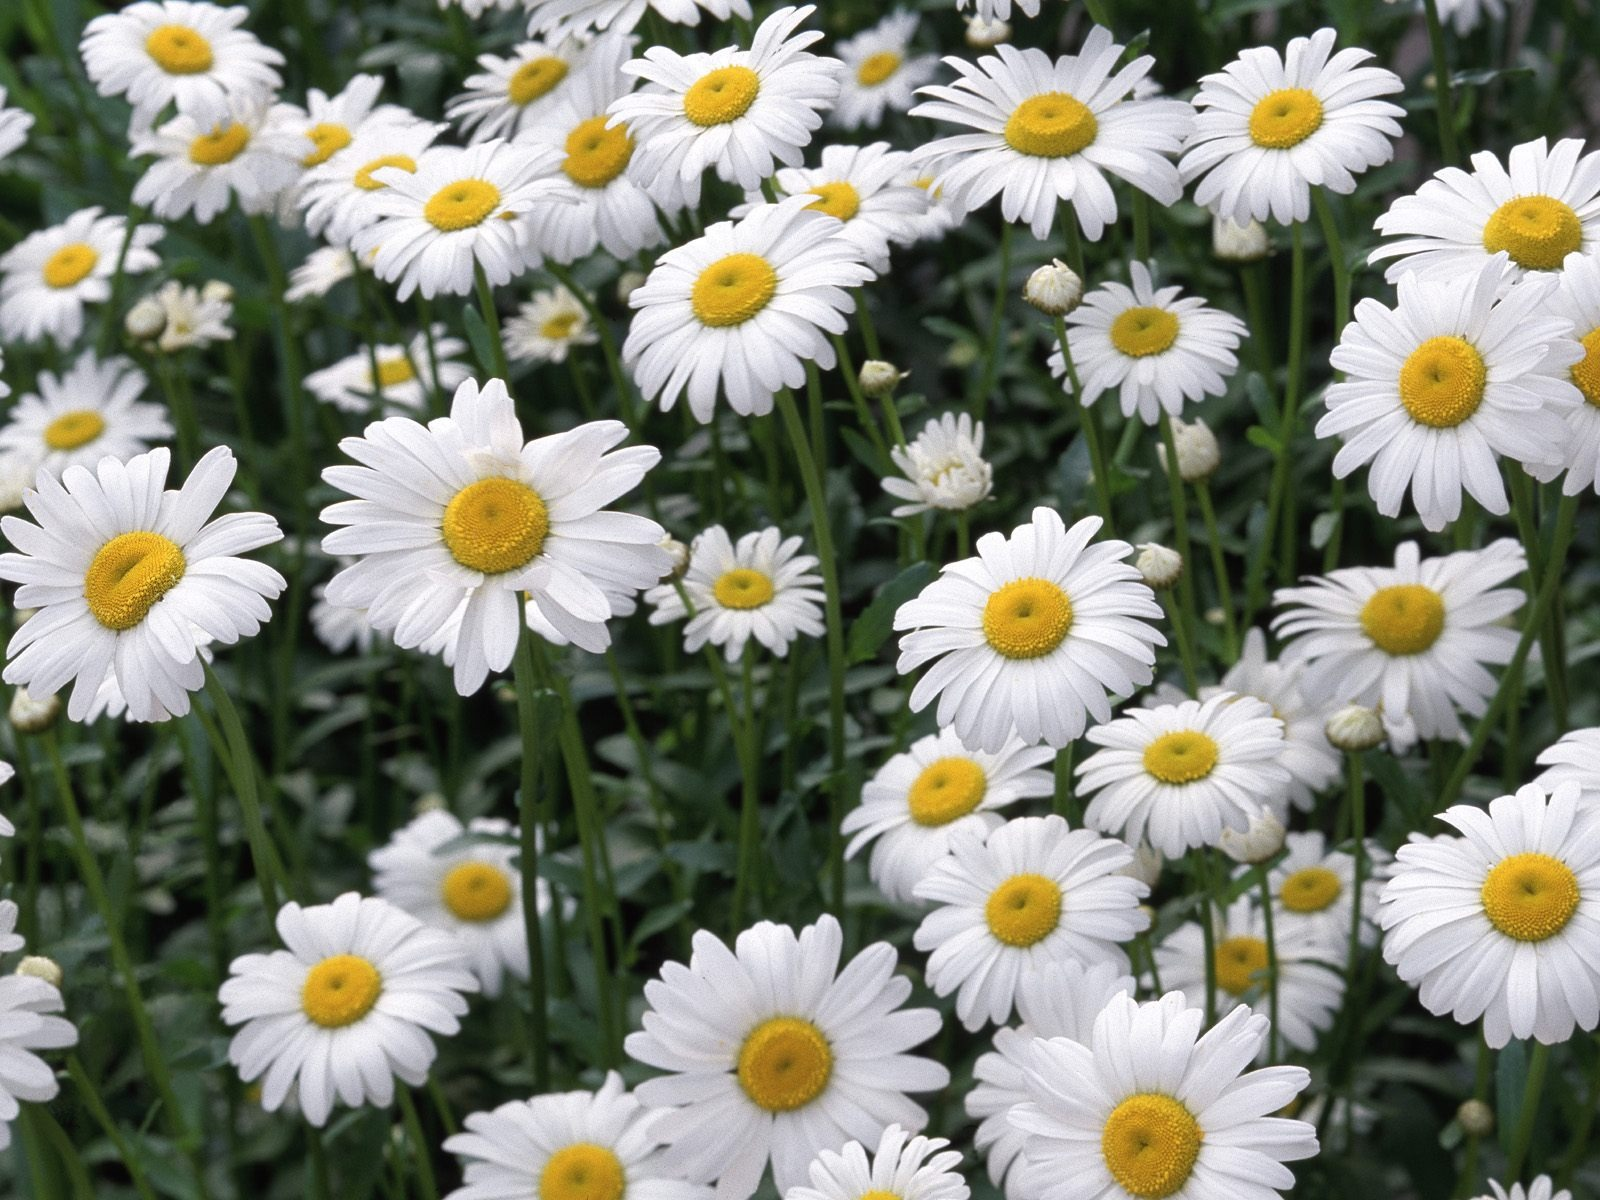 Daisies-by-Maximilian-Meyer-on-FL-Flowers-HDQ-KB-wallpaper-wp3404407